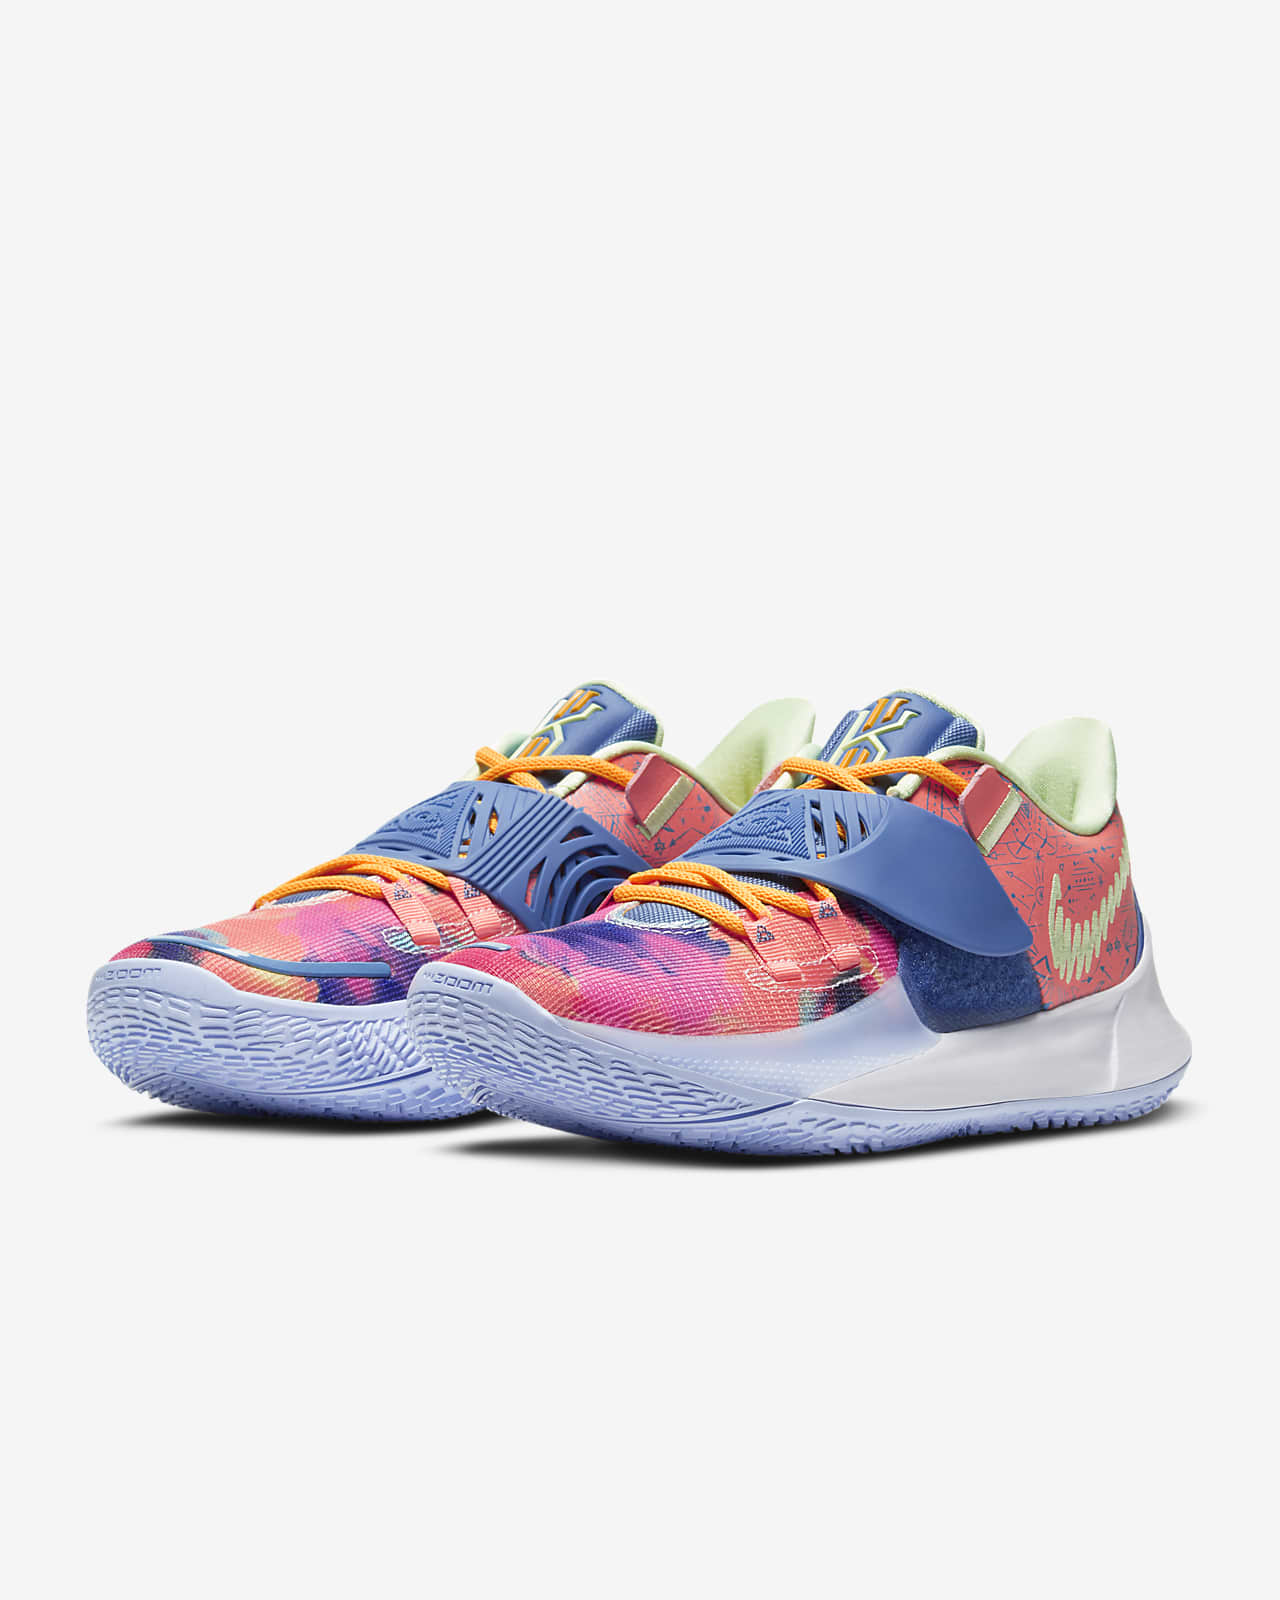 kyrie shoes 3